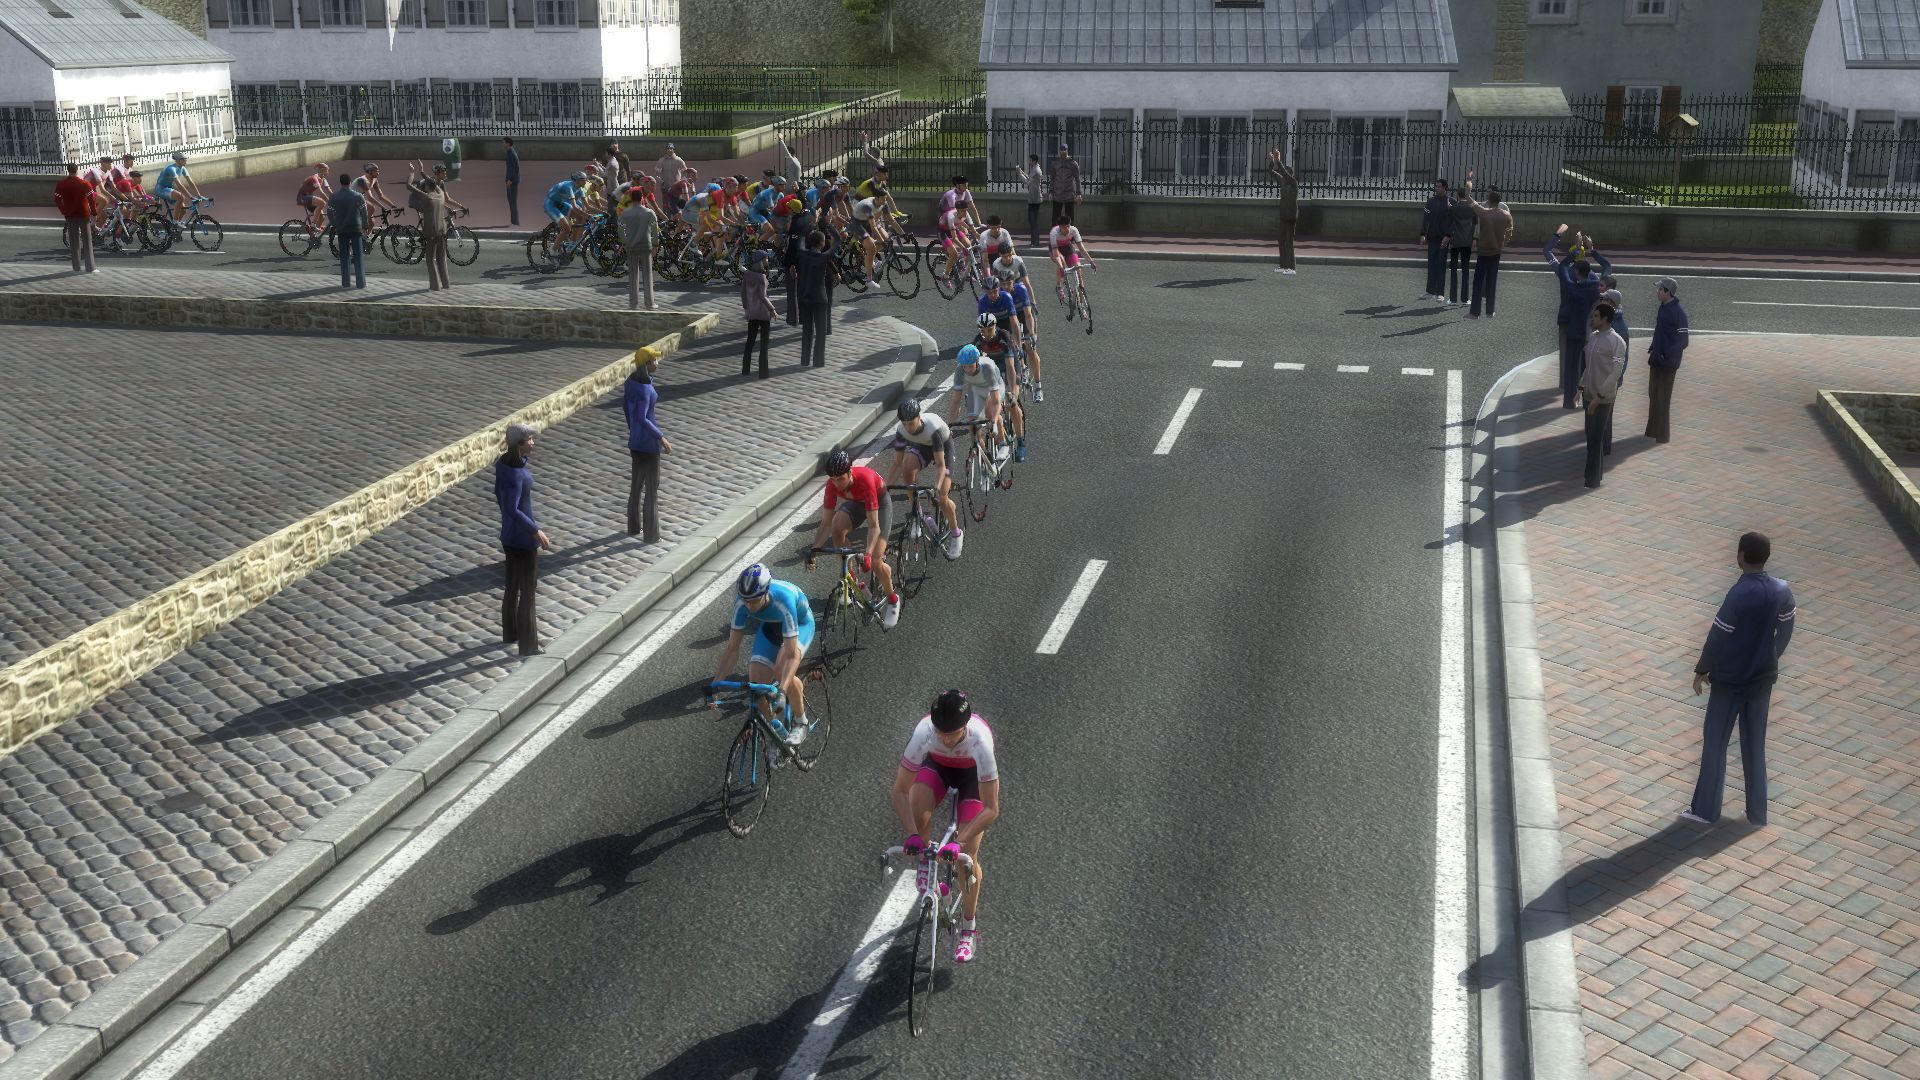 pcmdaily.com/images/mg/2019/Races/Other/NC/GER/GERRR%201.jpg